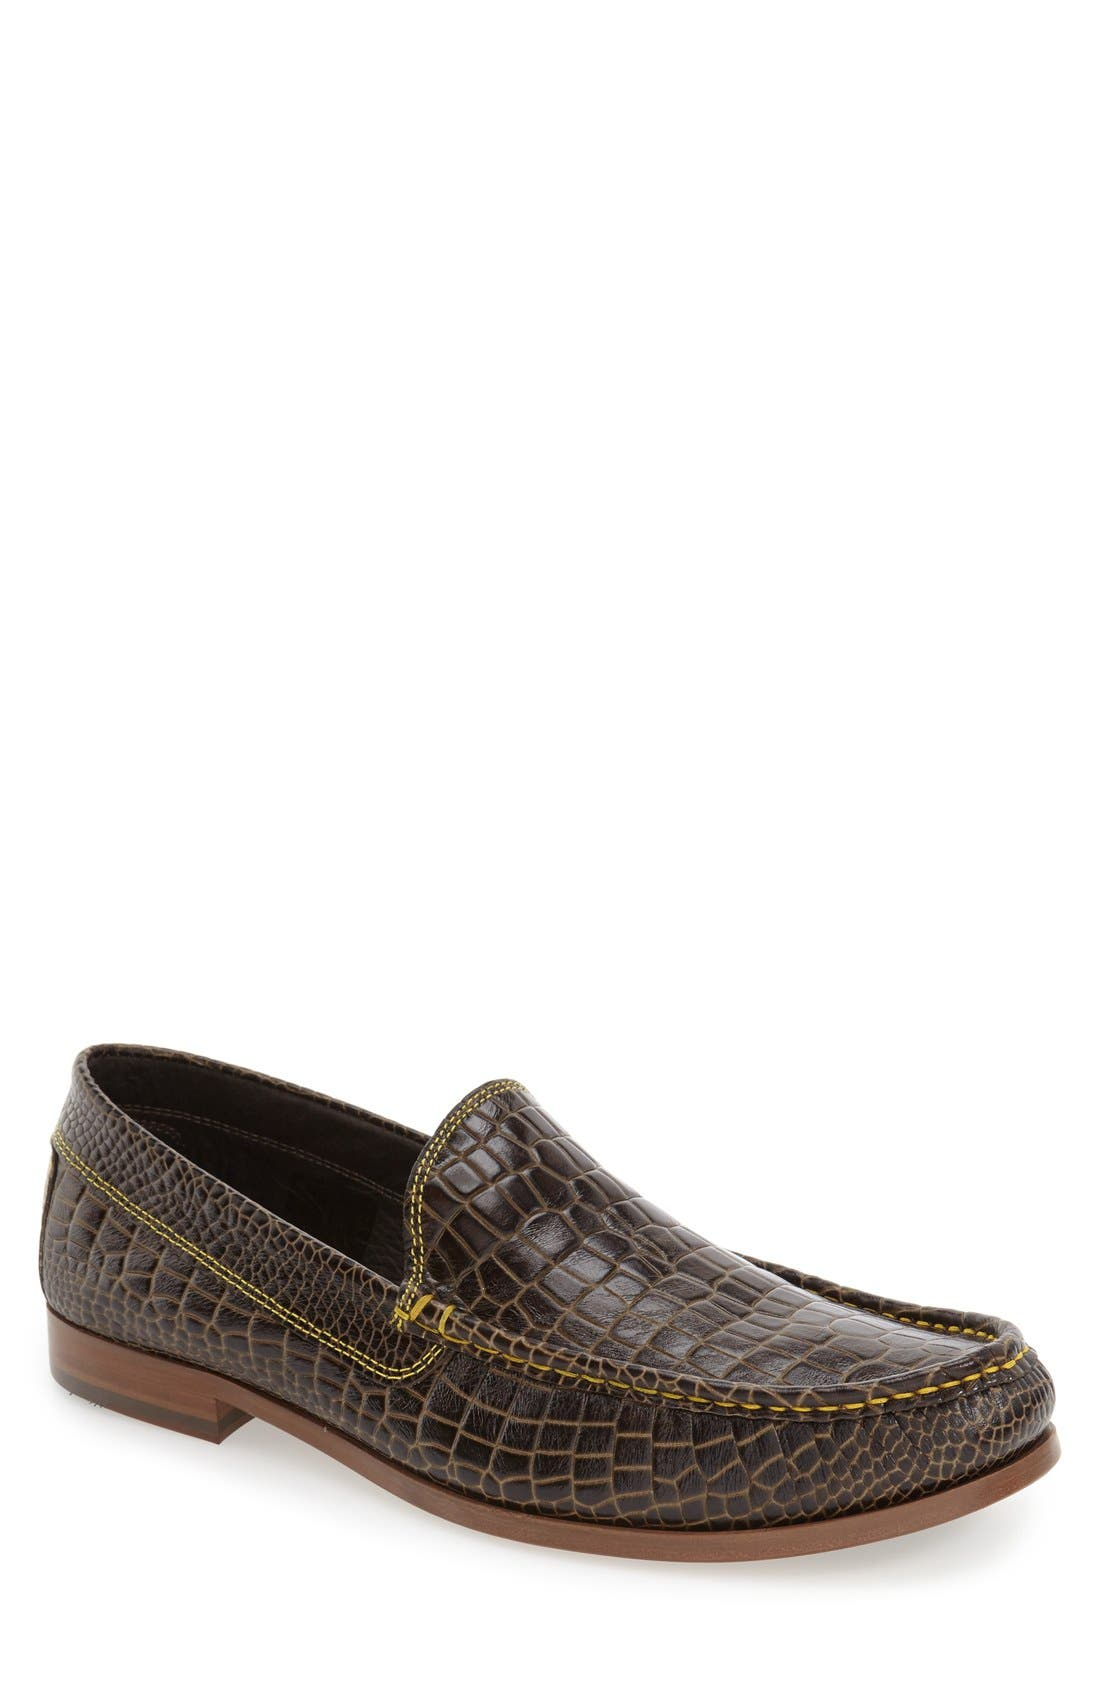 Donald J Pliner 'Nate' Loafer,                             Main thumbnail 2, color,